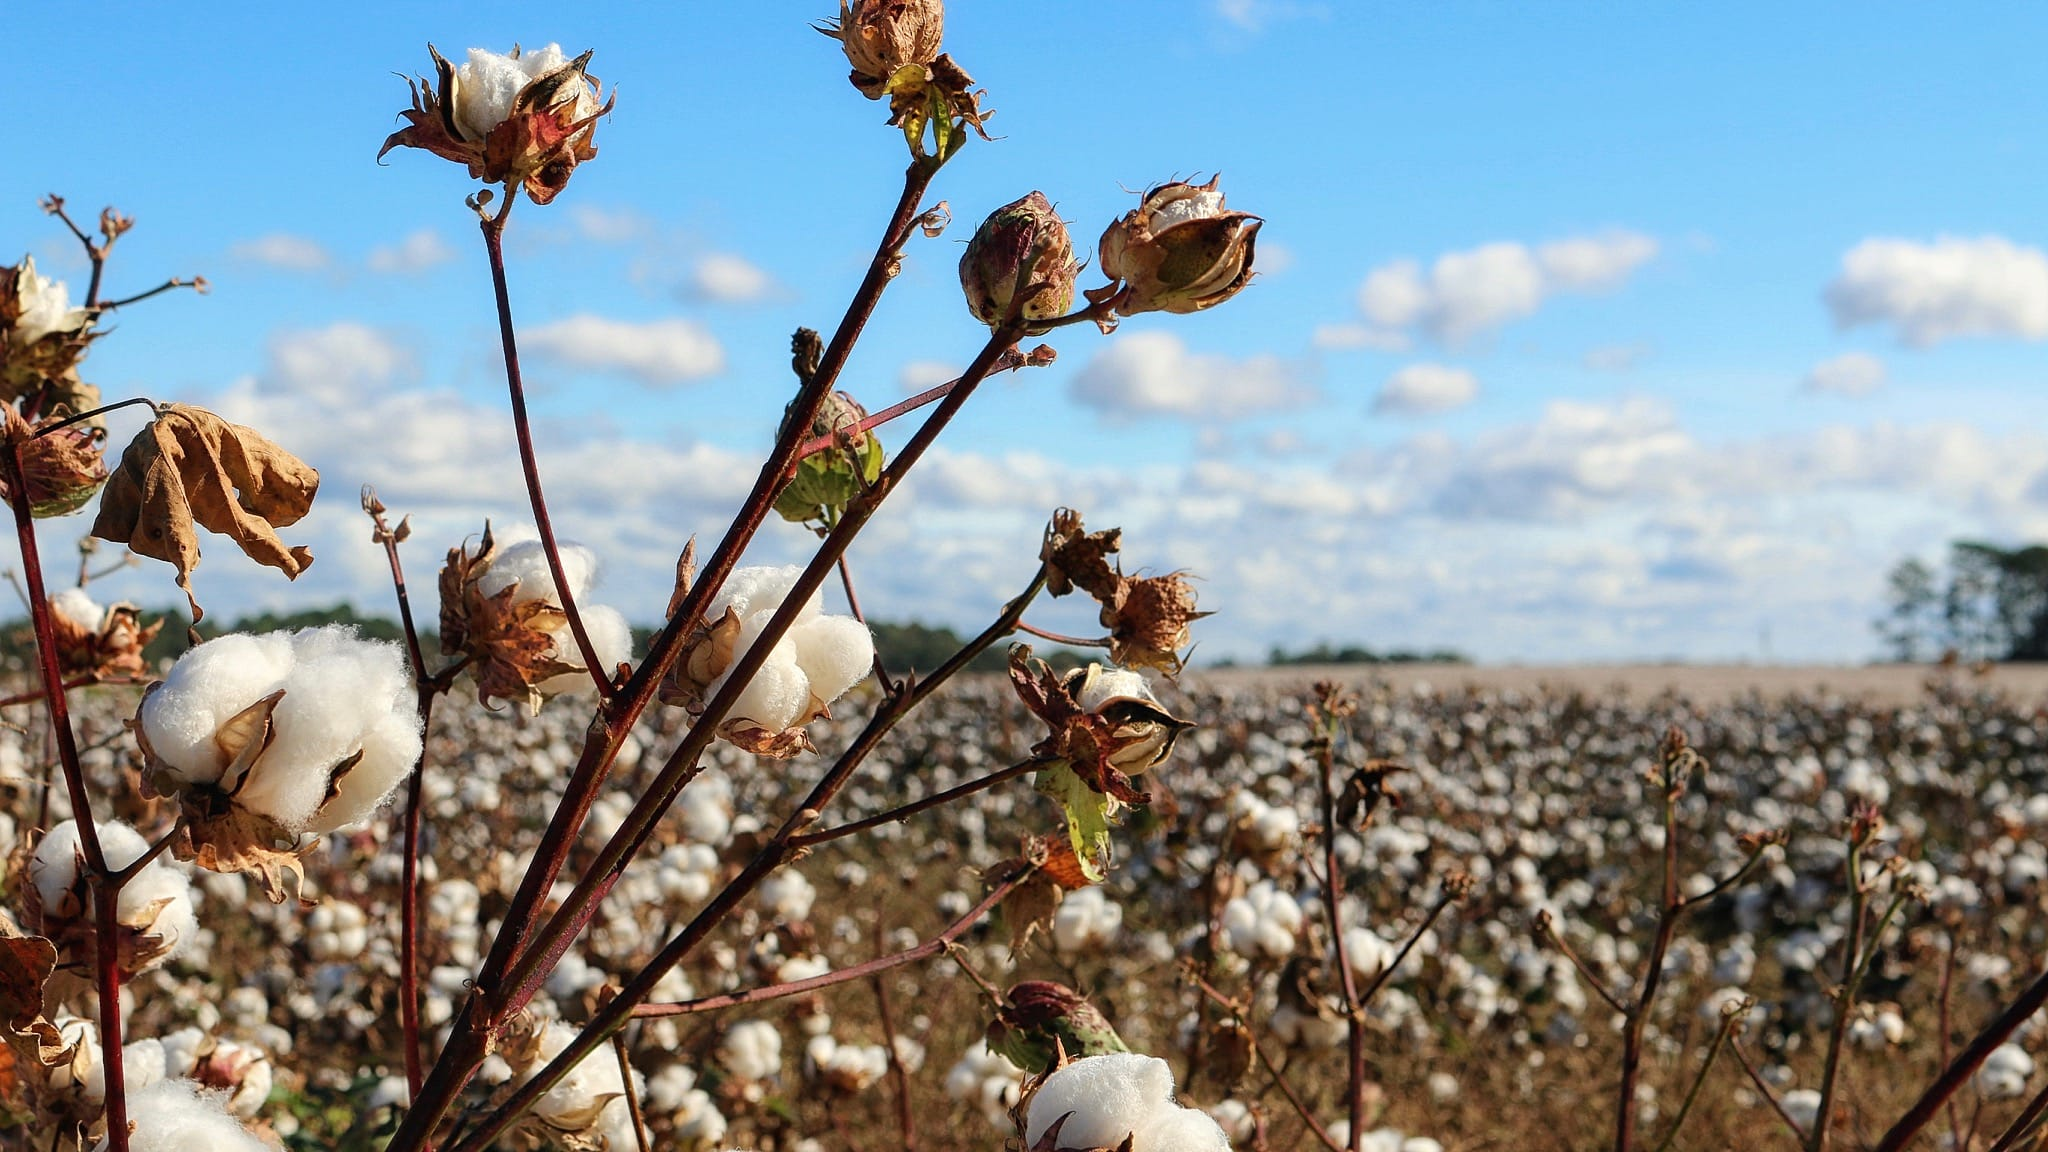 Cotton growing in field with blue skies above